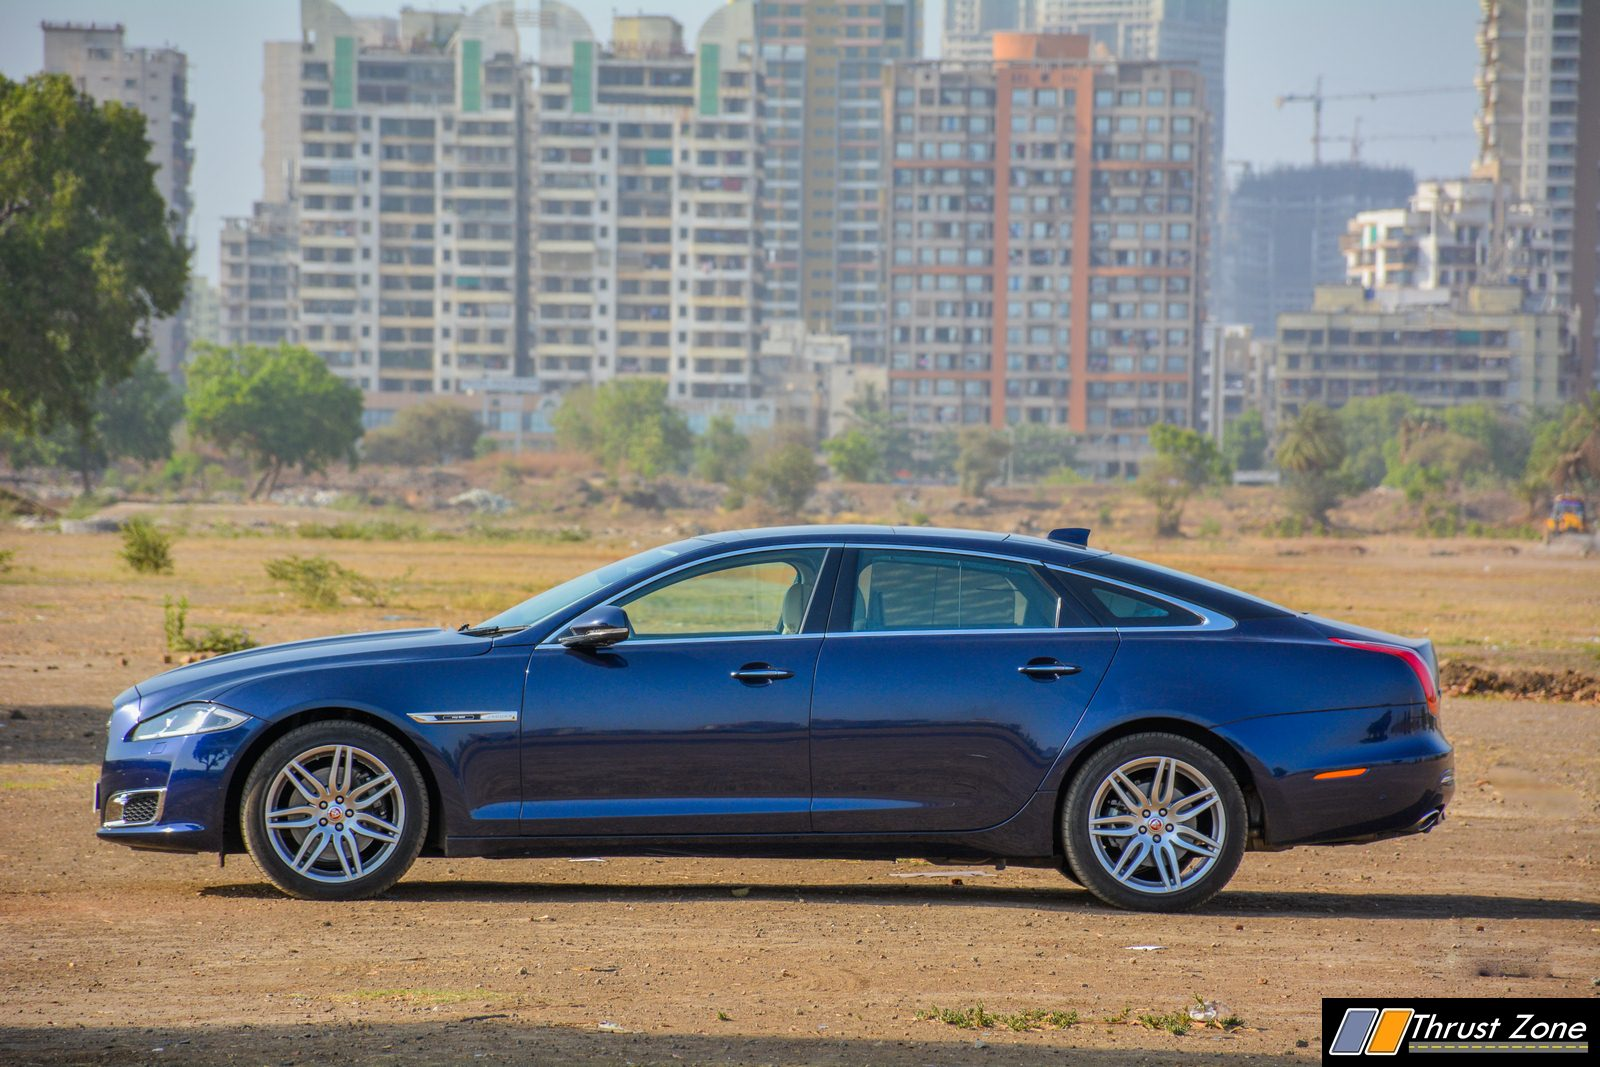 https://www.thrustzone.com/wp-content/uploads/2019/05/2019-Jaguar-XJ-50-Diesel-V6-Review-26.jpg